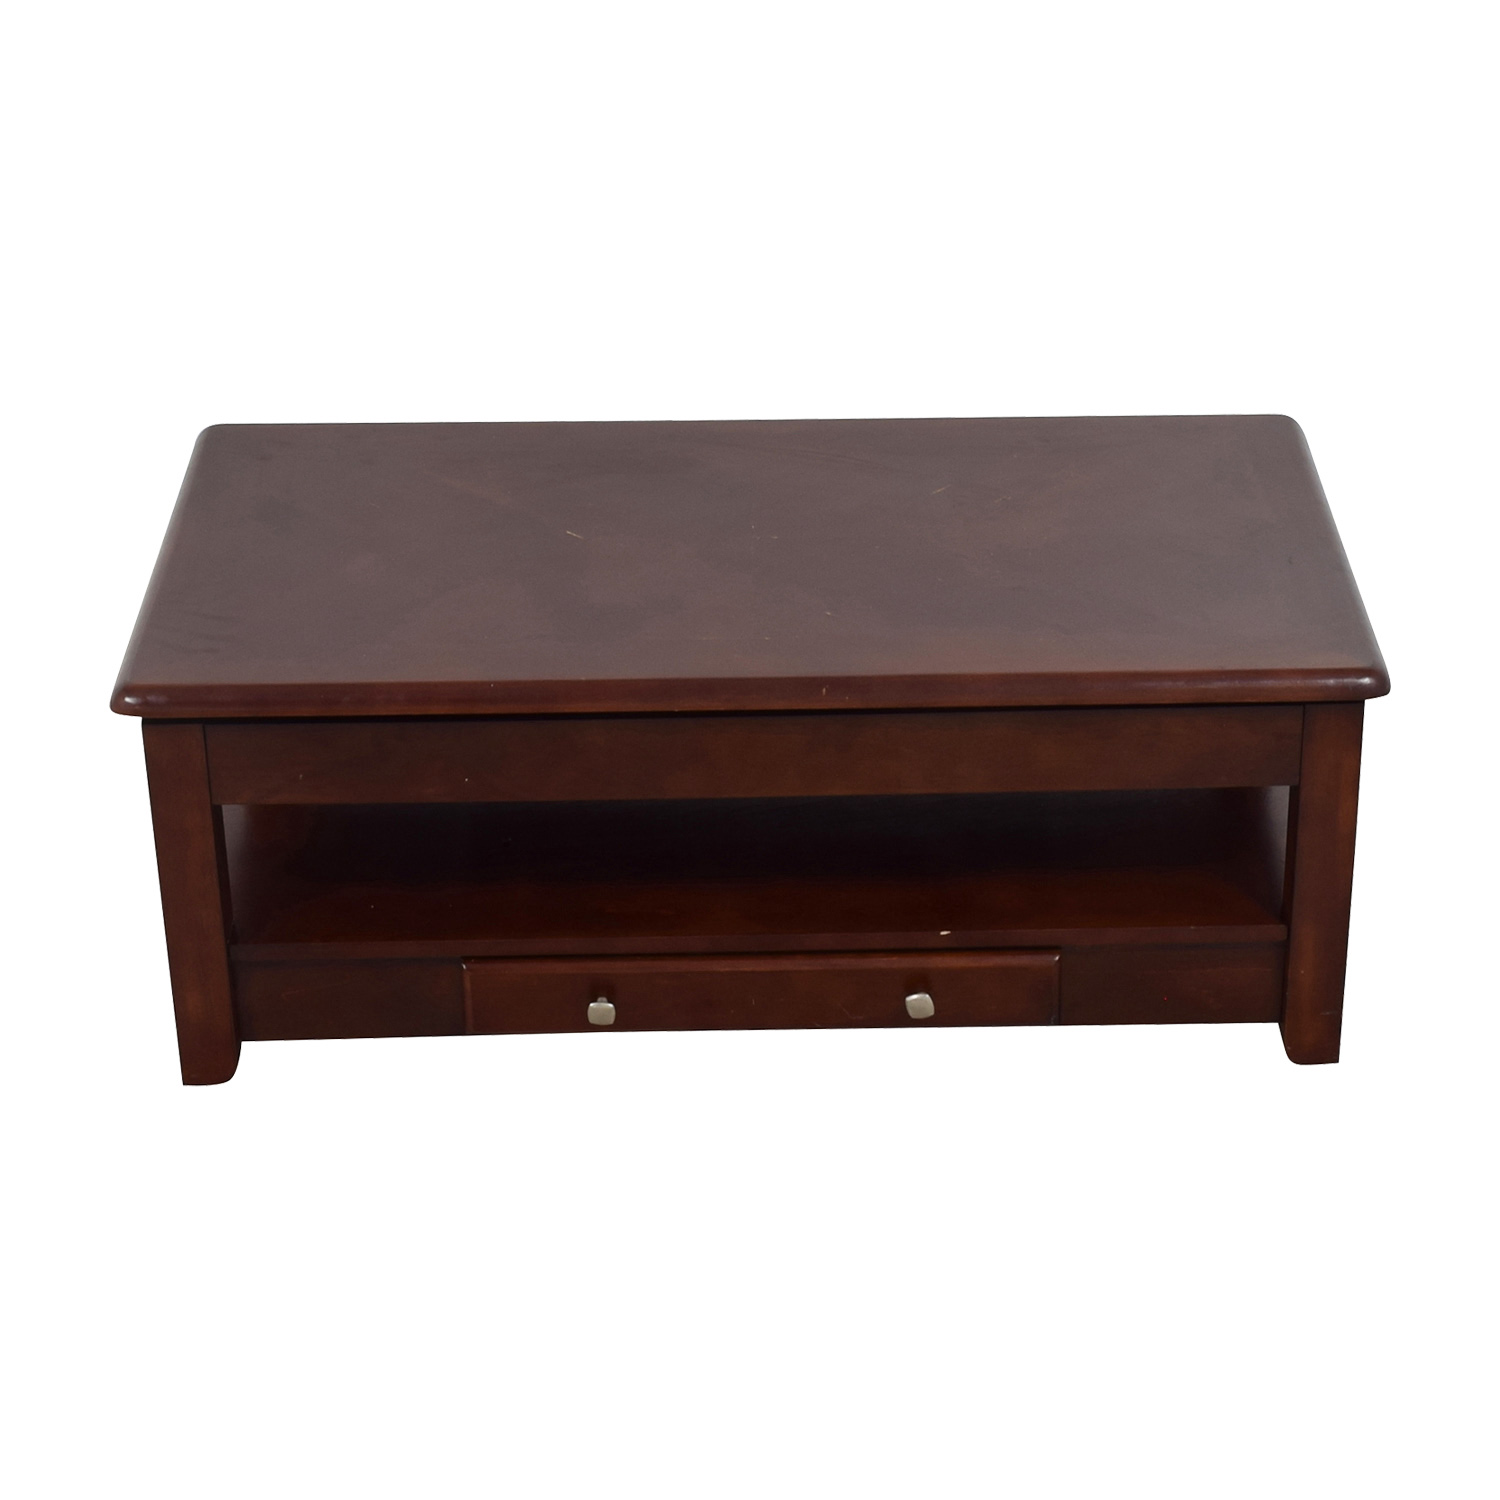 buy Raymour & Flanigan Lift Top Coffee Table Raymour & Flanigan